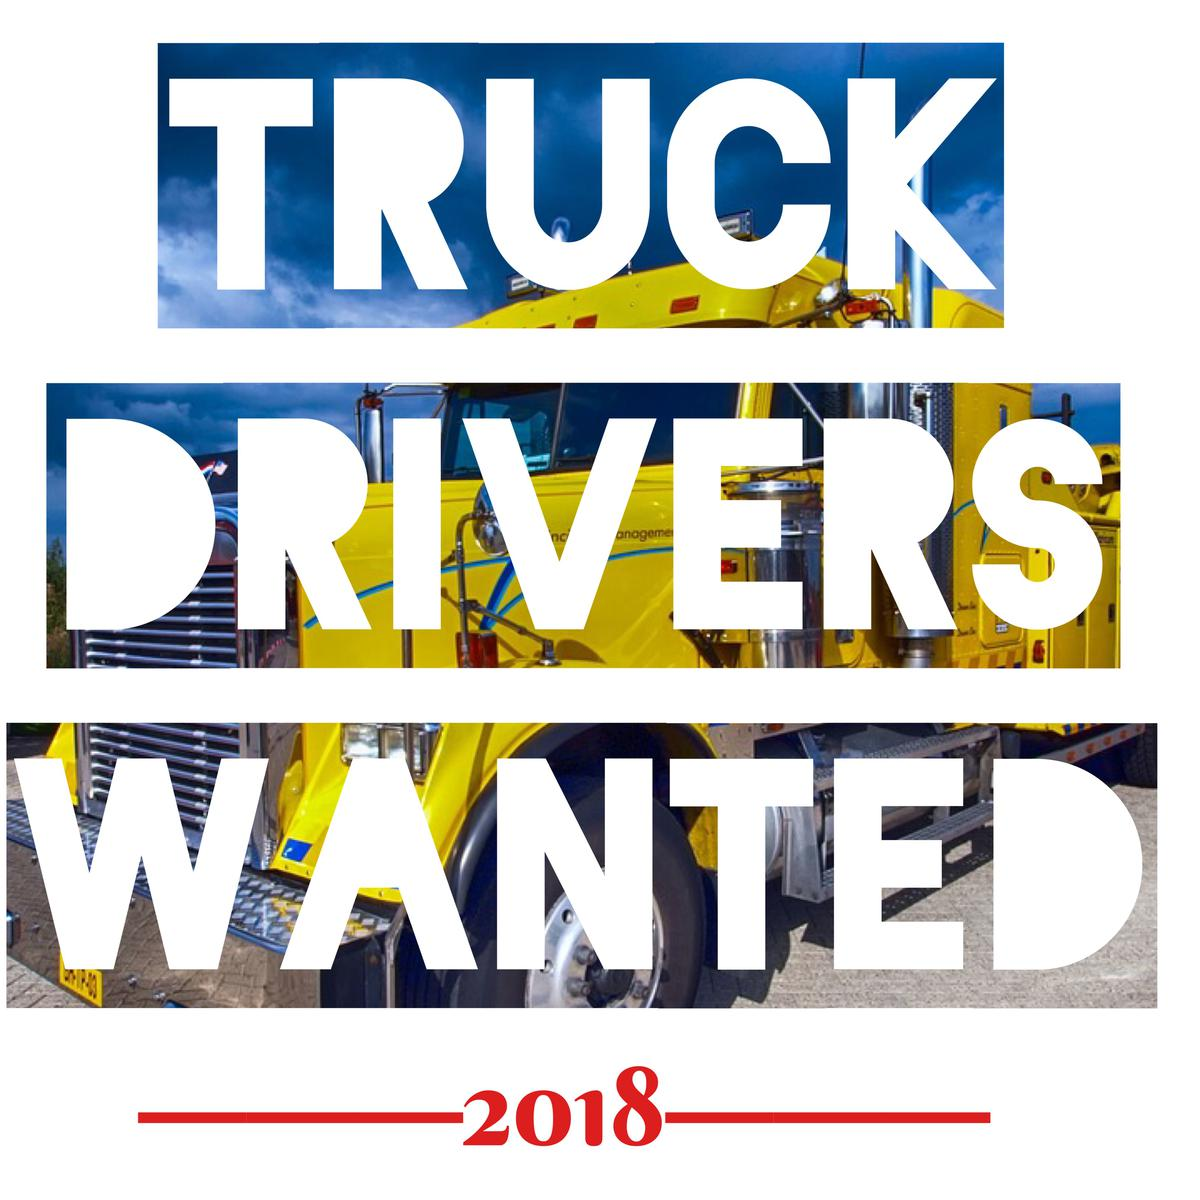 America needs more truck drivers